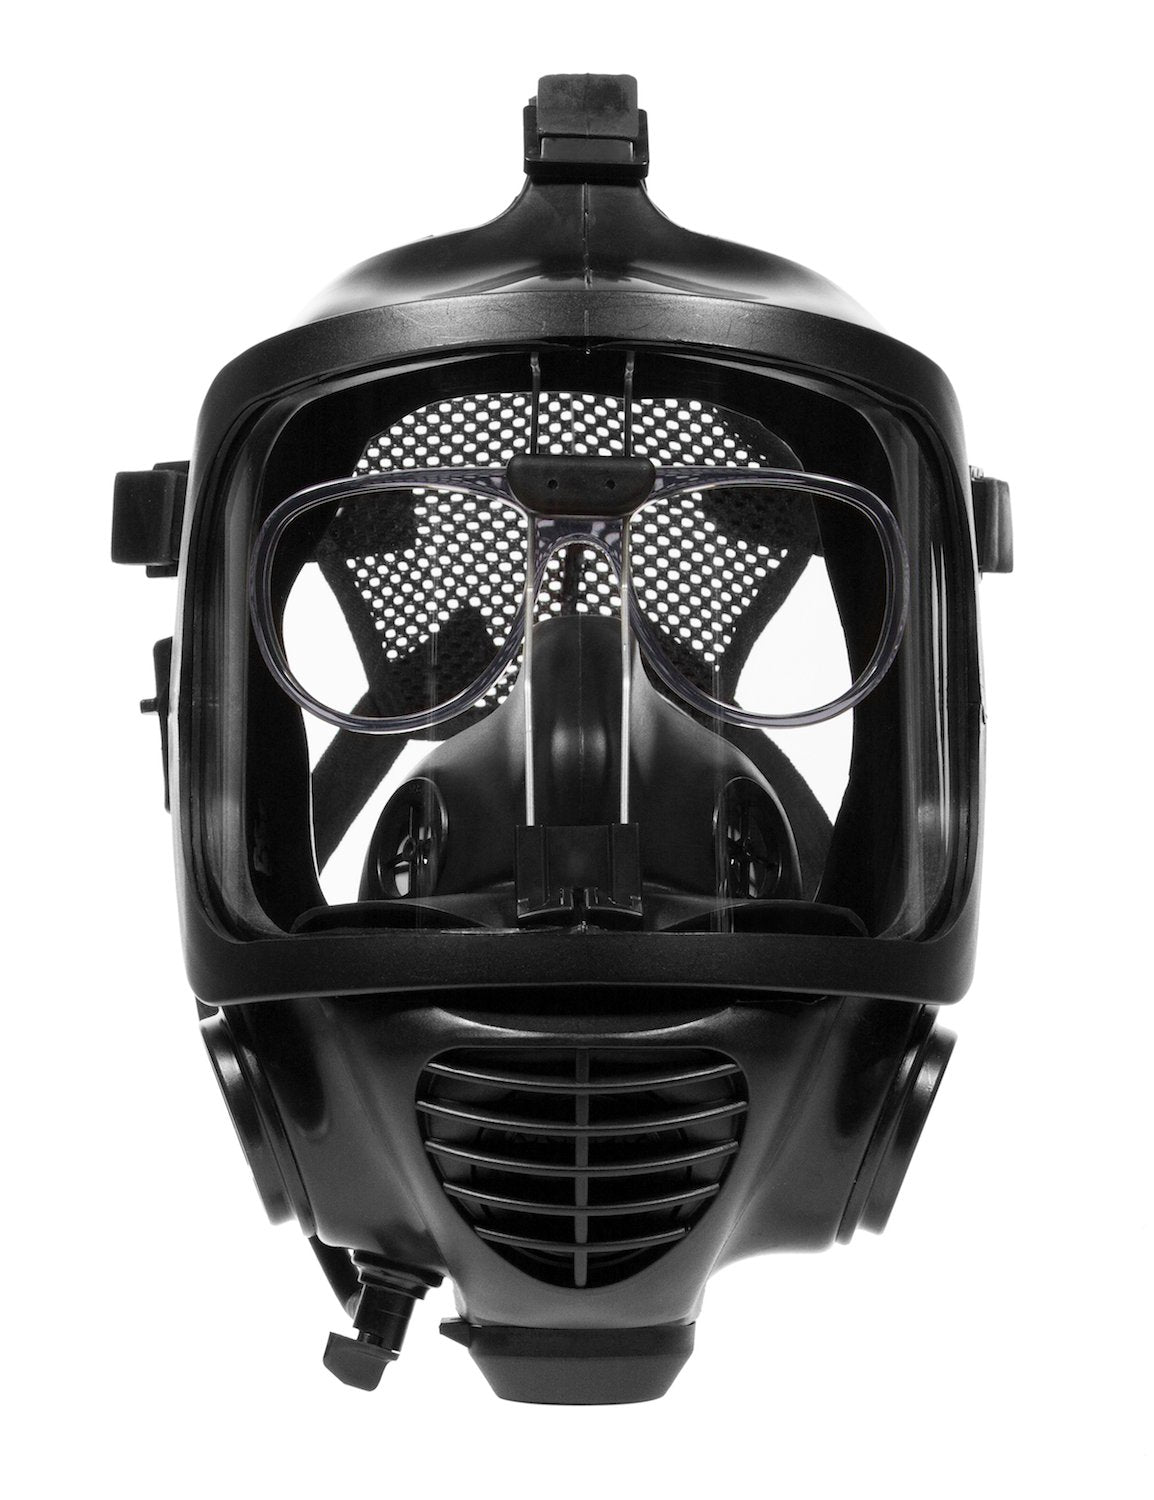 Front view of CM-6M tactical gas mask with the 3M spectacle insert